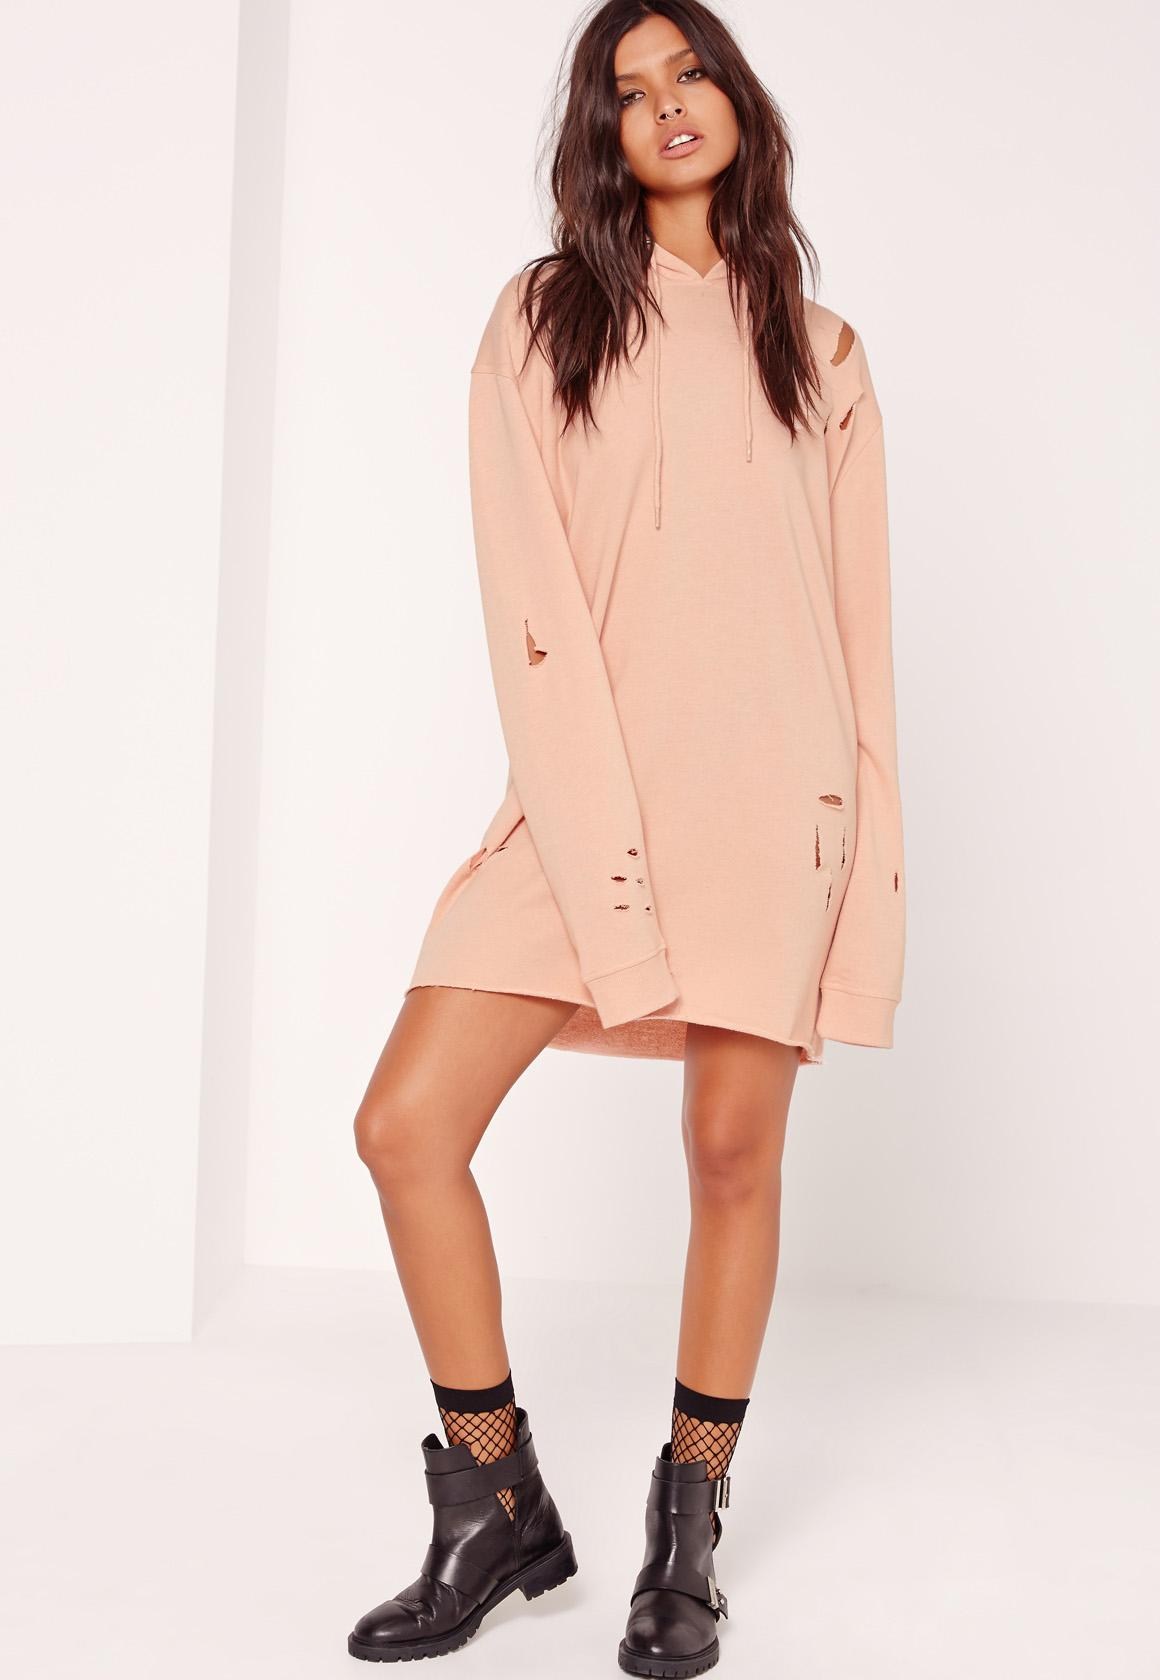 Petite Nude Ripped Hooded Sweater Dress | Missguided